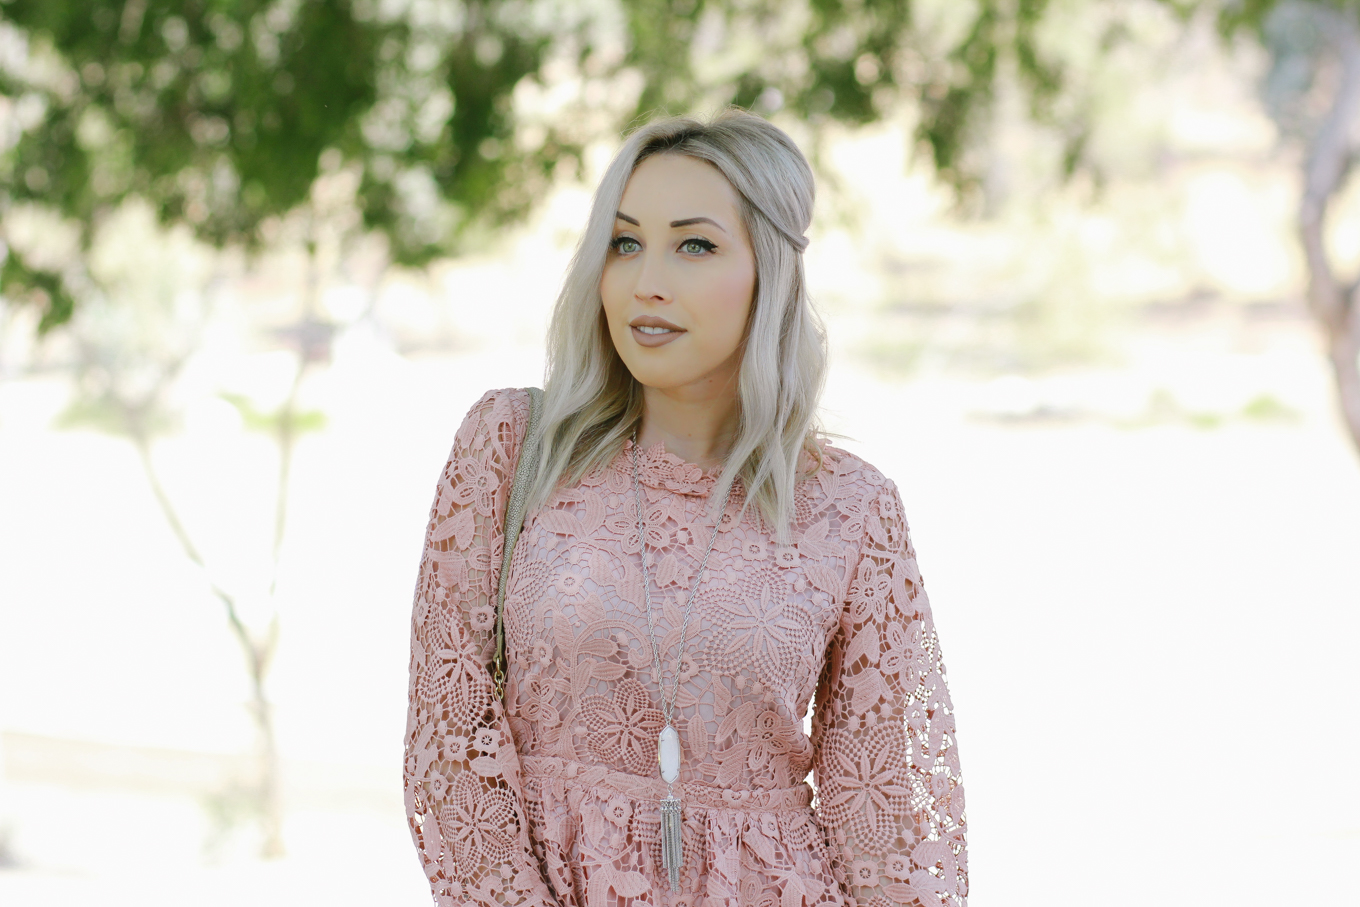 Blondie in the City | Pink Lace Dress | Elegant Dress